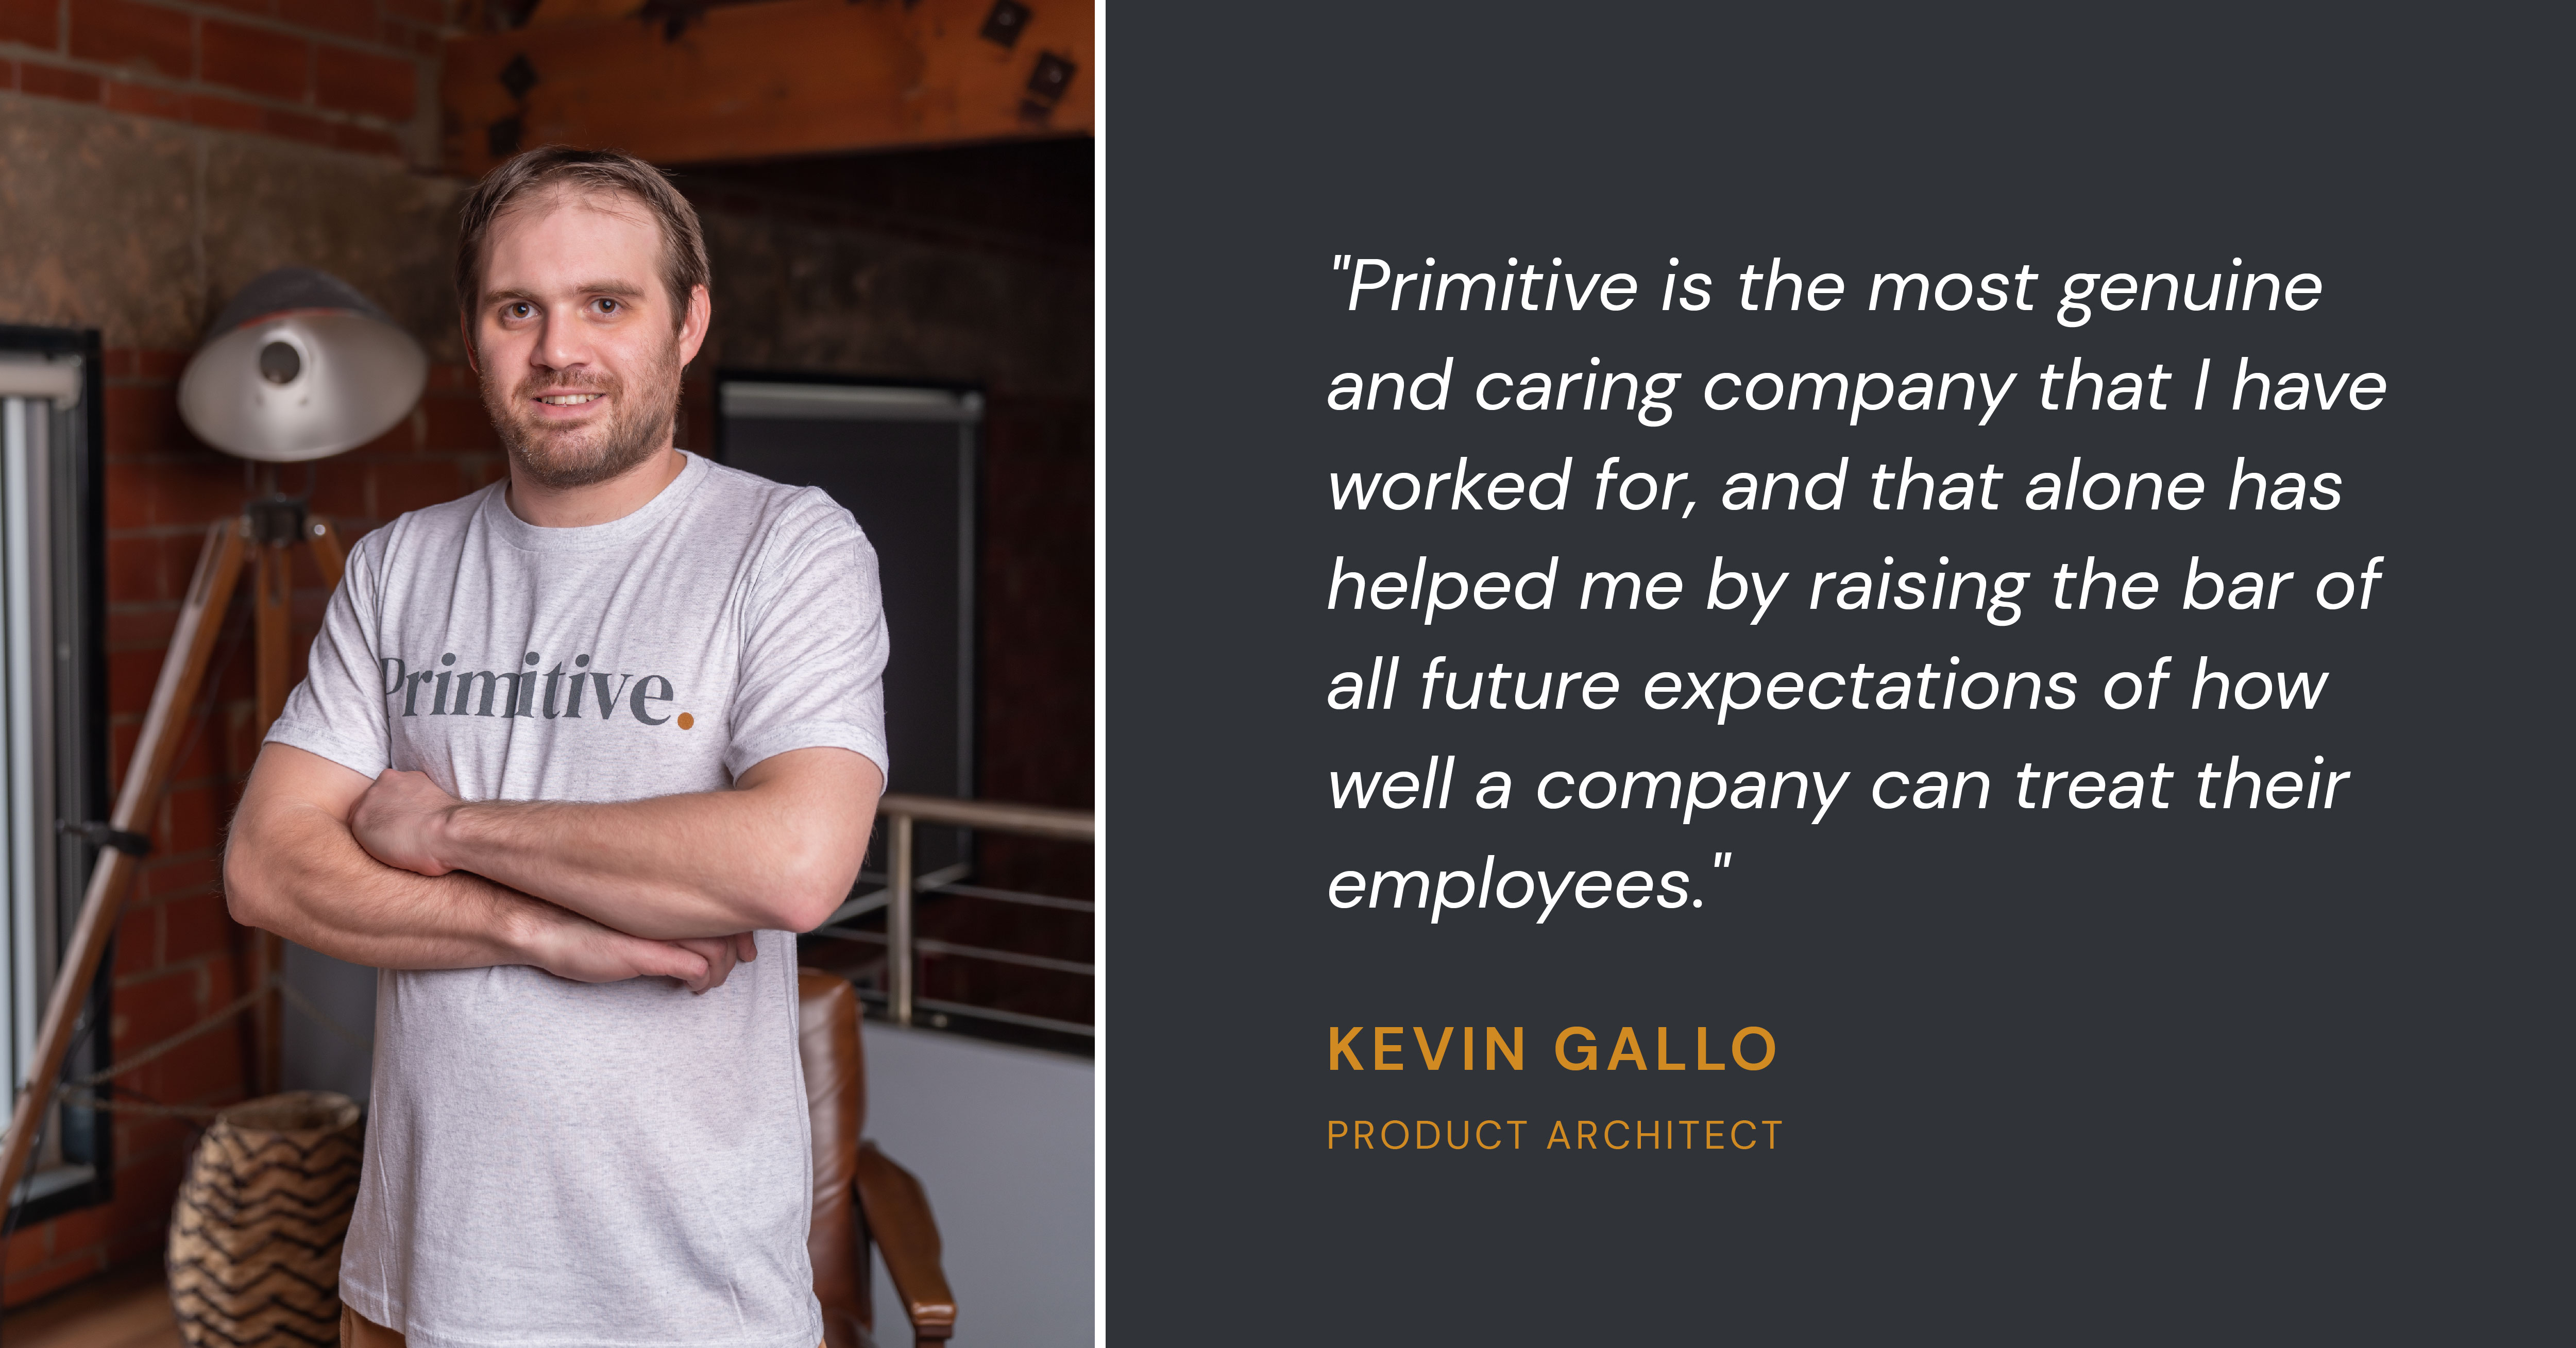 Kevin-Gallo-Product-Architect